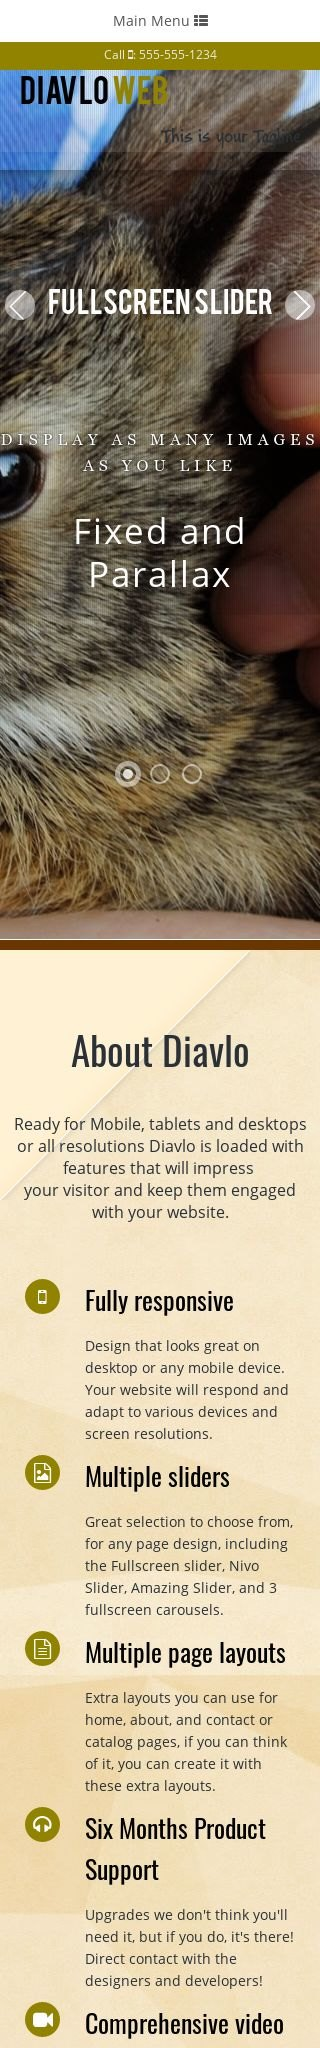 Mobile: Pet-store Web Template